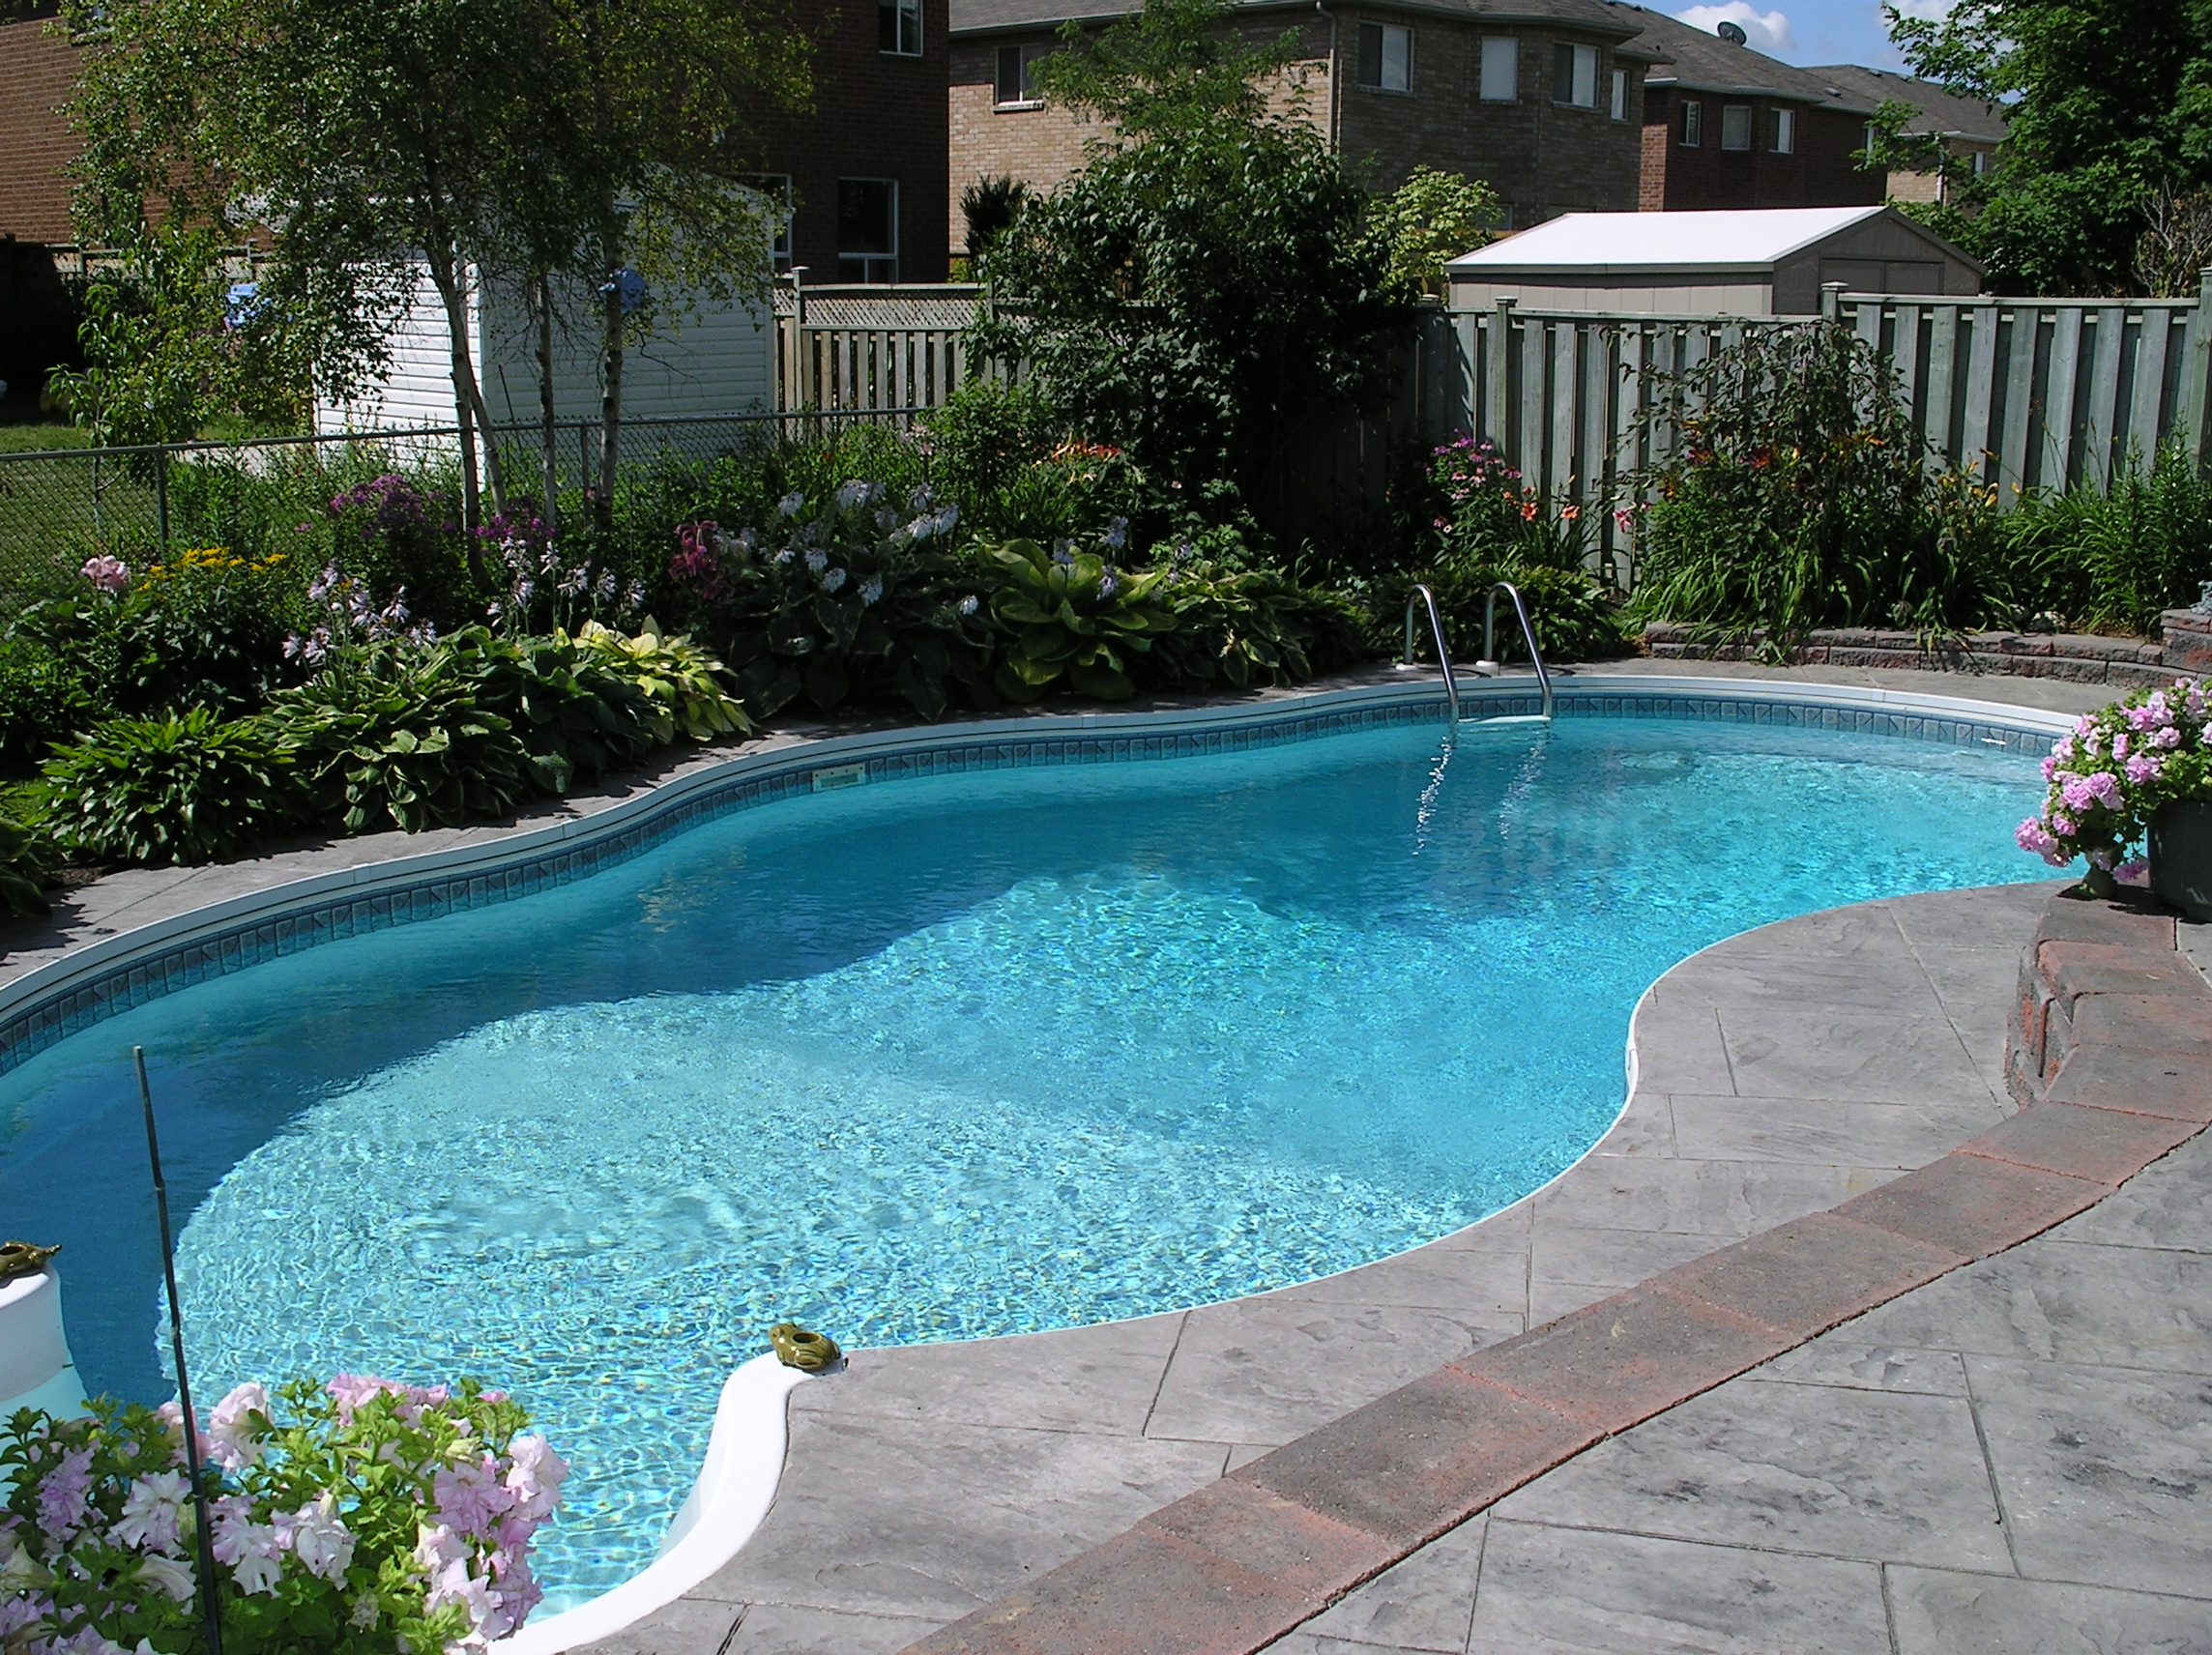 Advantages and Disadvantages of natural stones for swimming pools